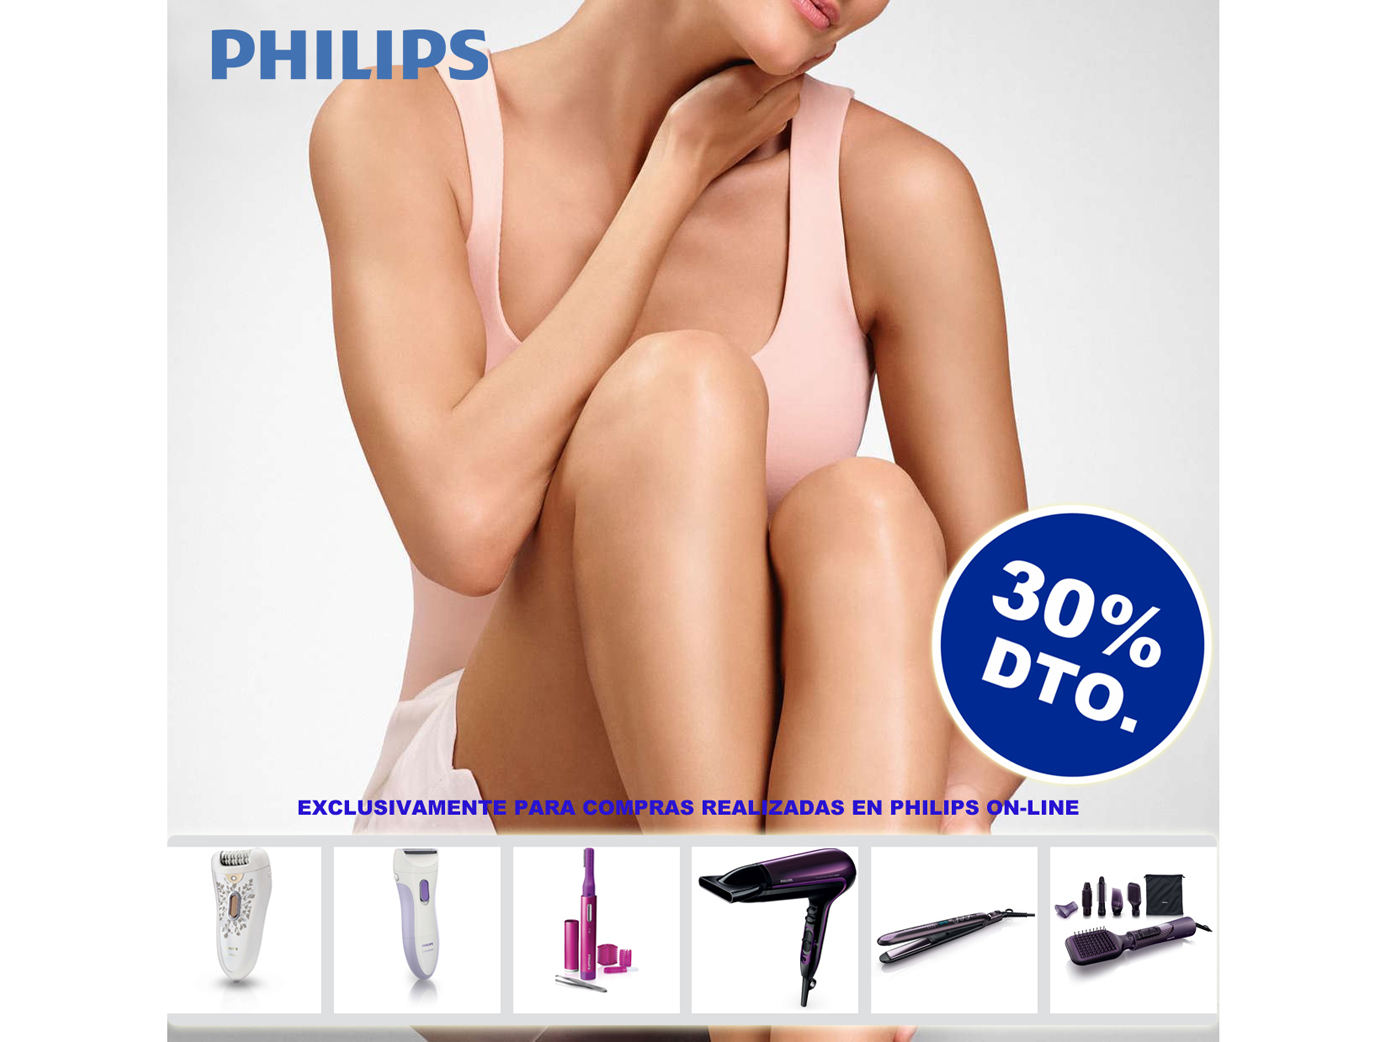 30% de dte. Web PHILIPS Bellesa